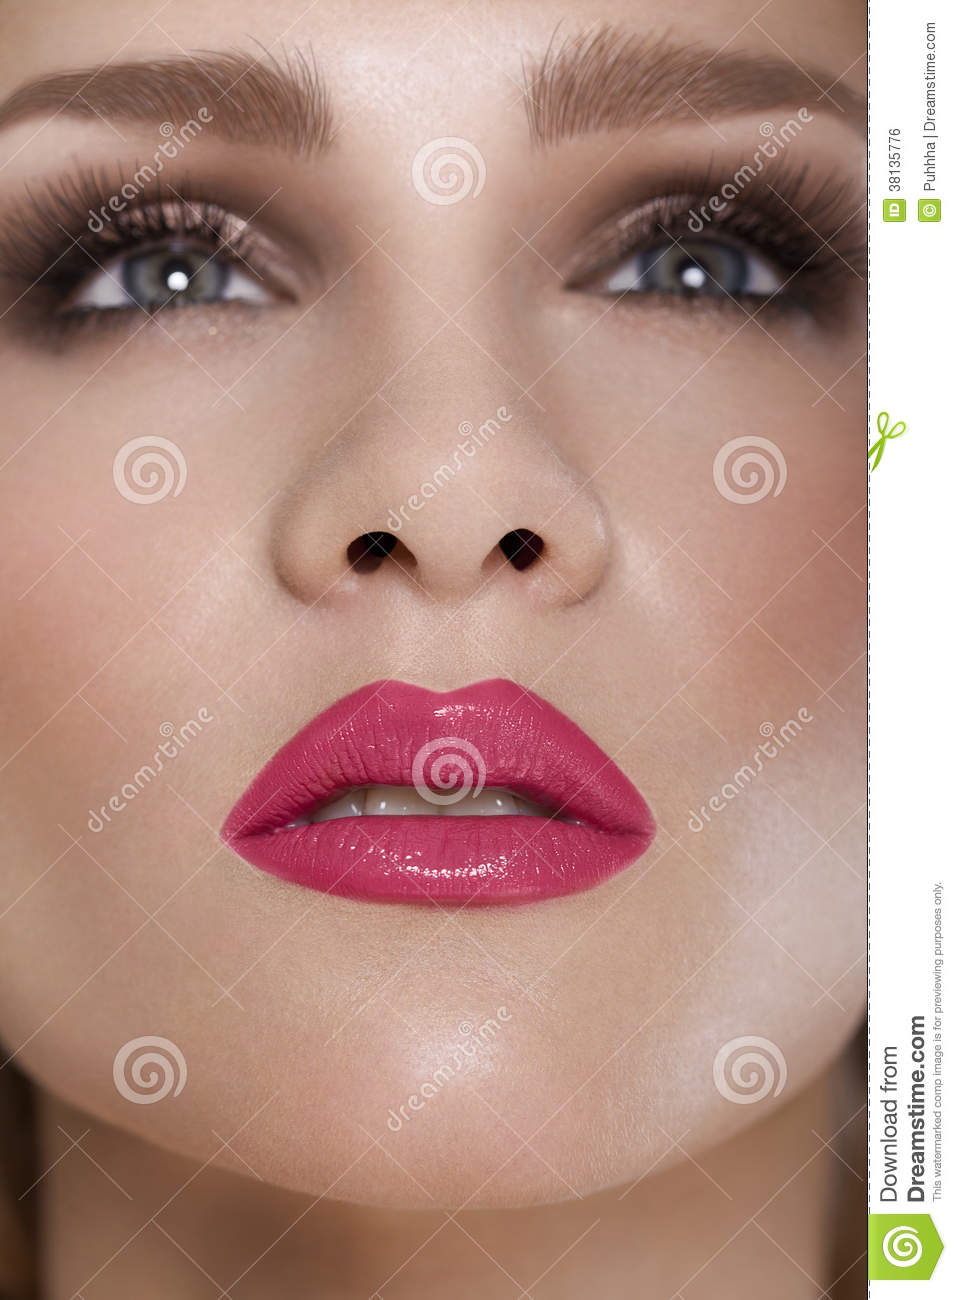 70 best Kissable Lips images on Pinterest | Cigarette ...